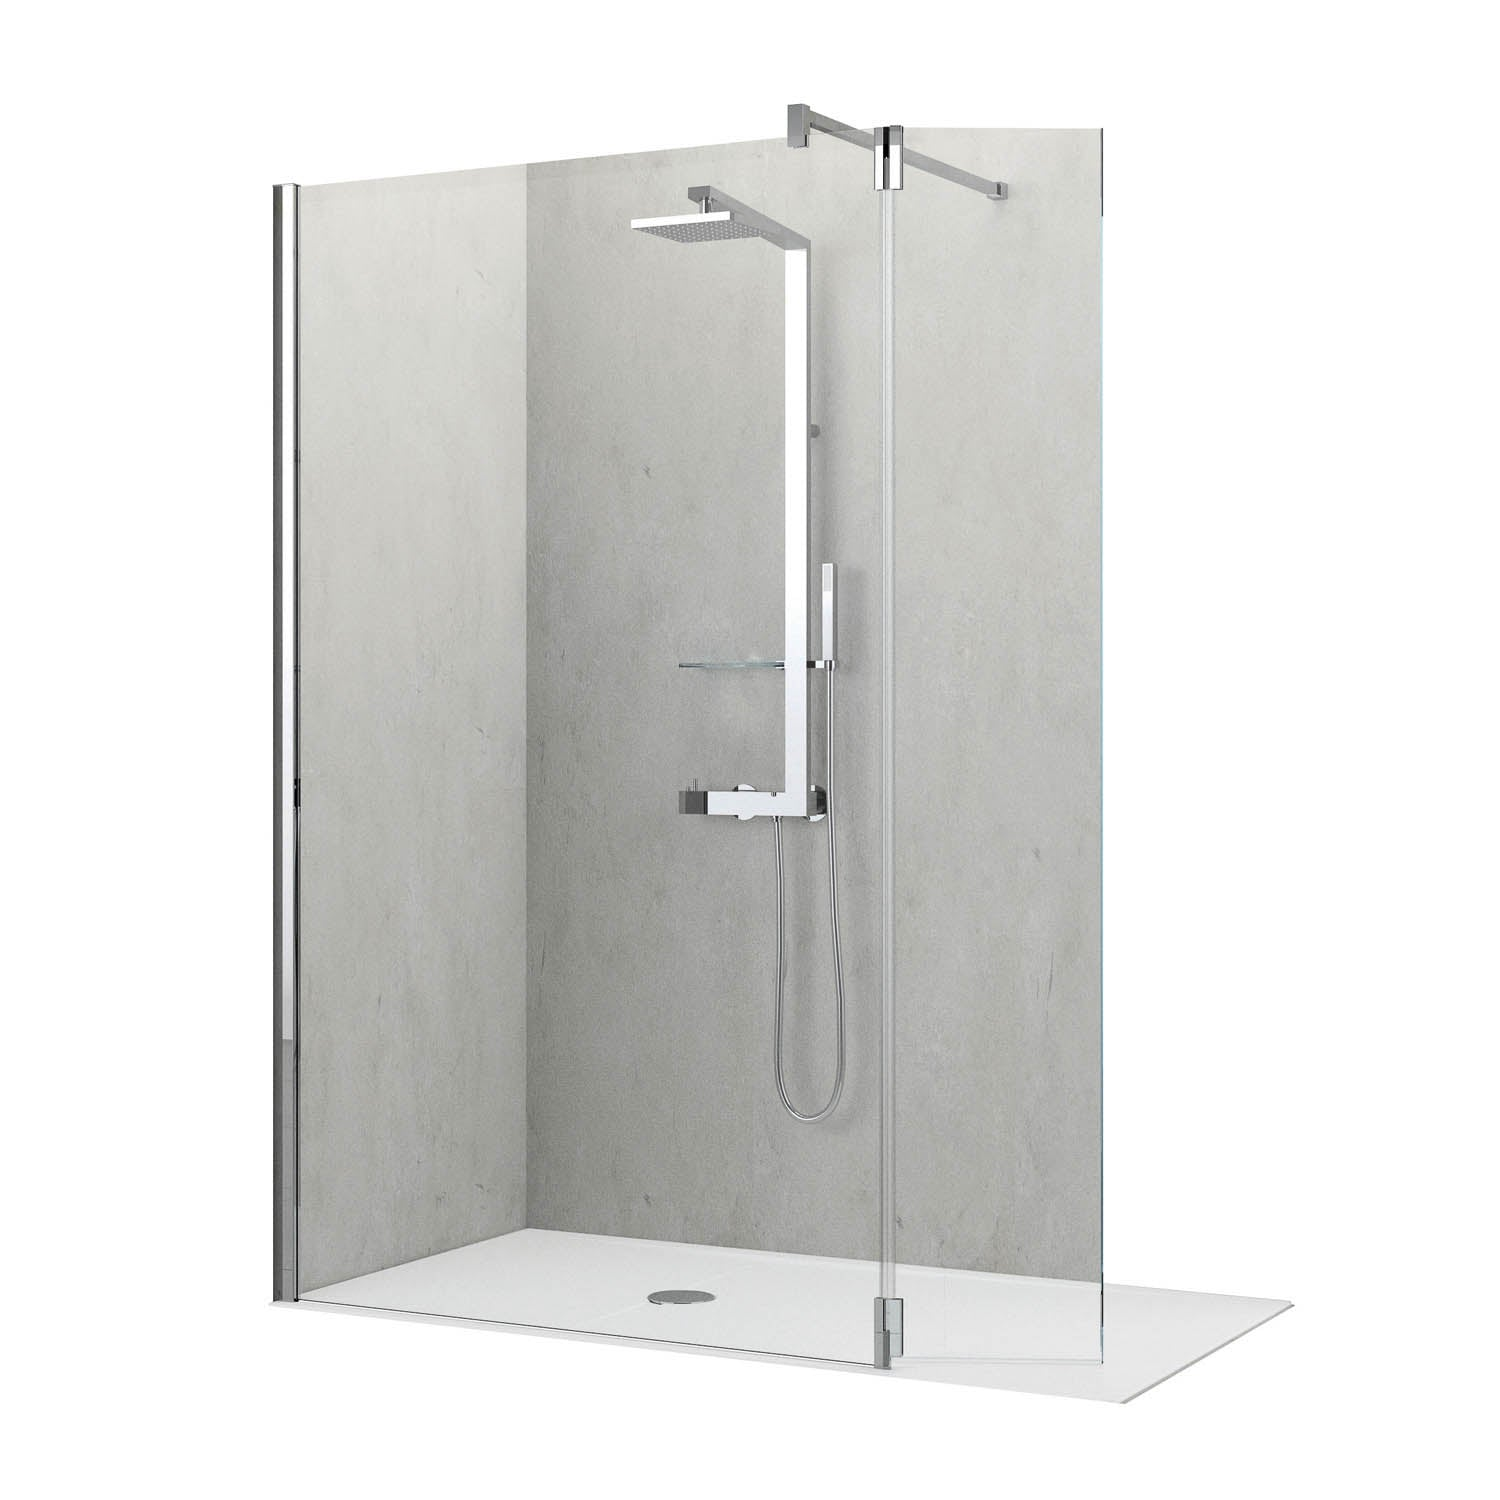 770-800mm Ergo Wet Room Screen Clear Glass with a chrome finish on a white background